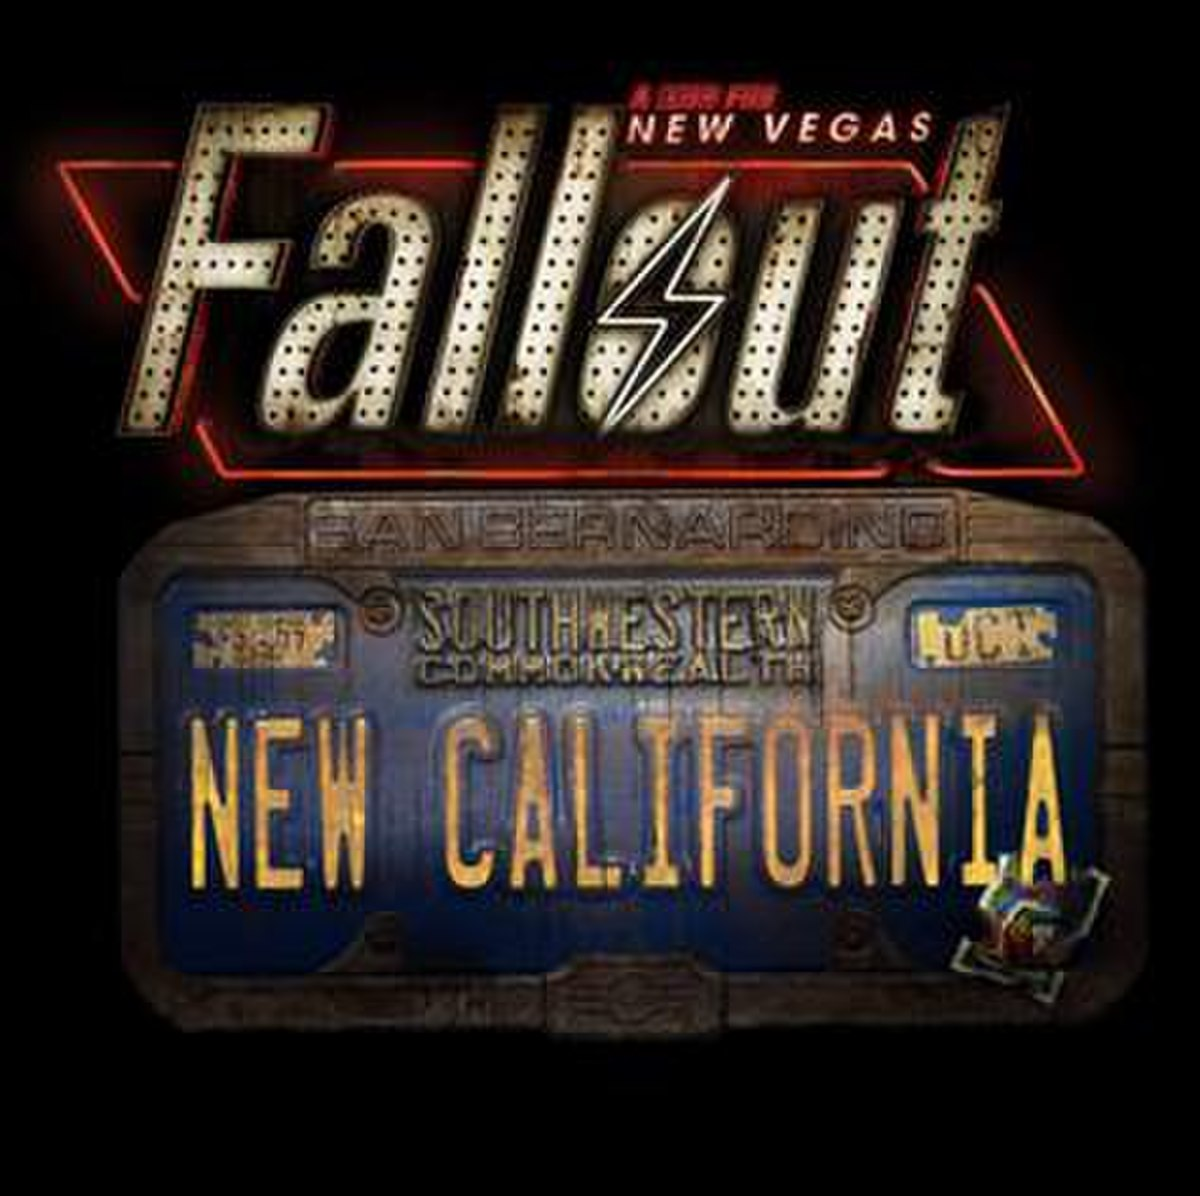 Fallout new vegas release date in Melbourne